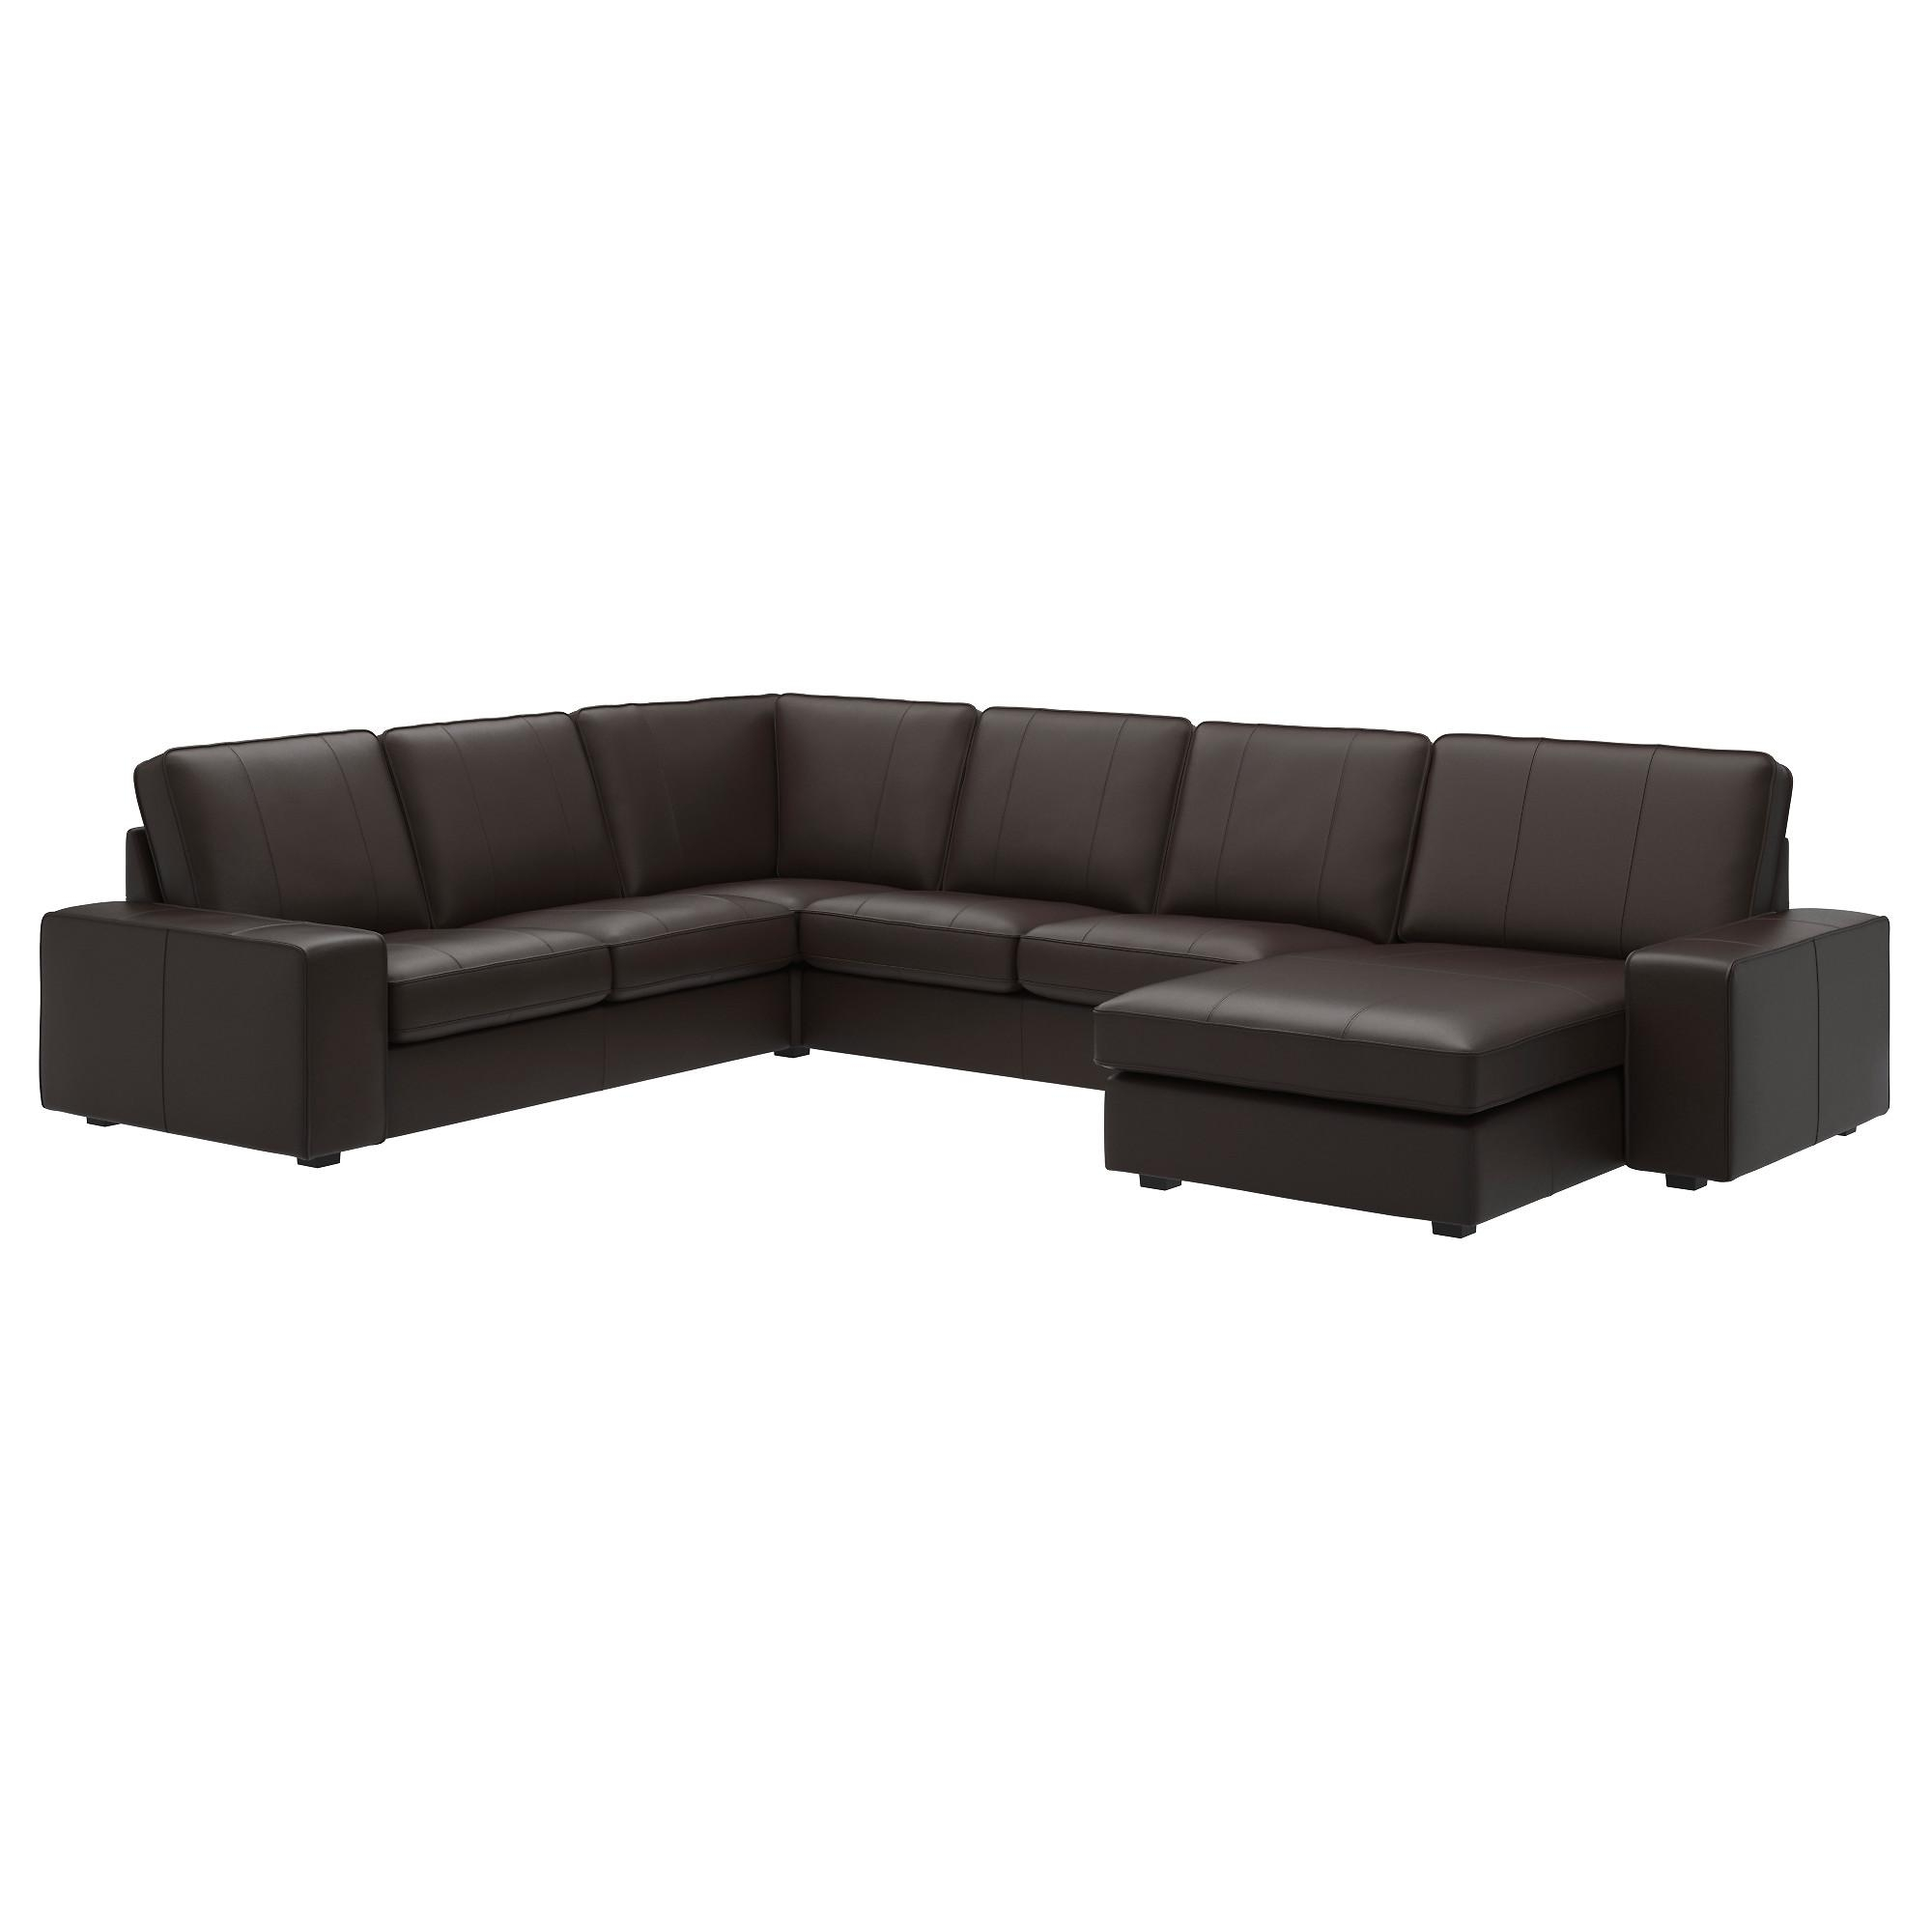 Sectional Sofas & Couches – Ikea With Regard To Long Chaise Sofa (View 20 of 20)